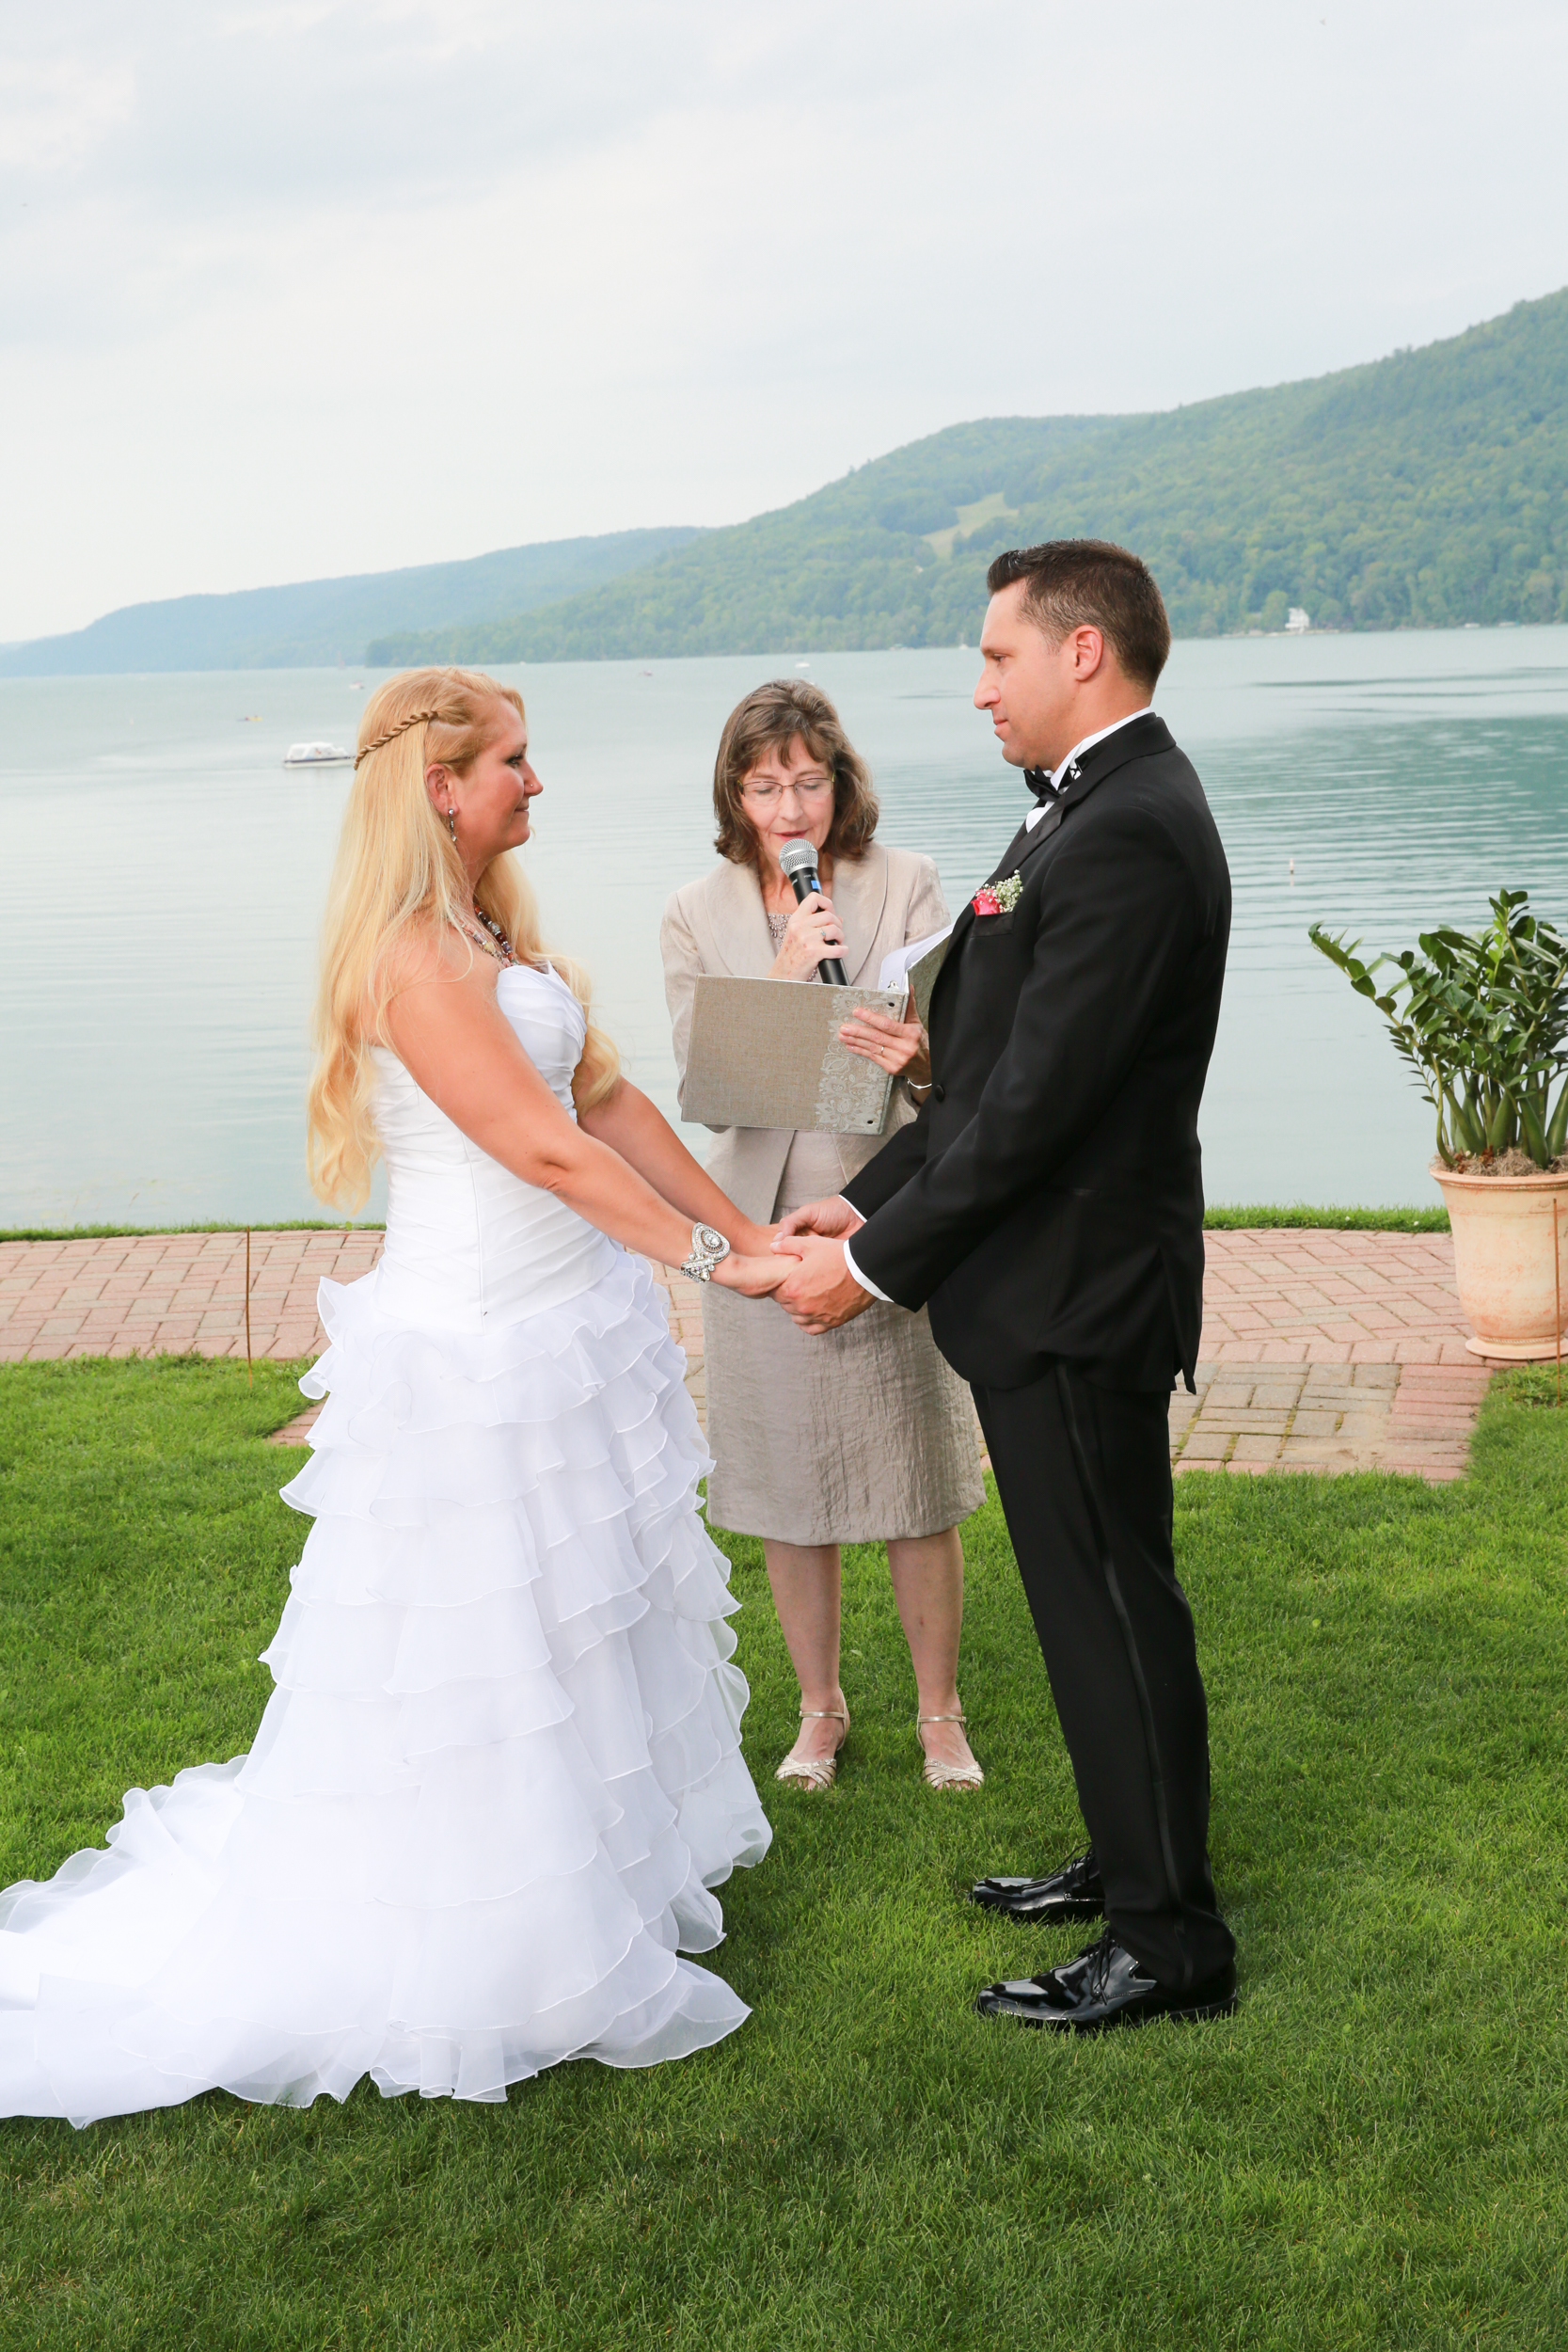 photograph of wedding vows at a lake side summer wedding.